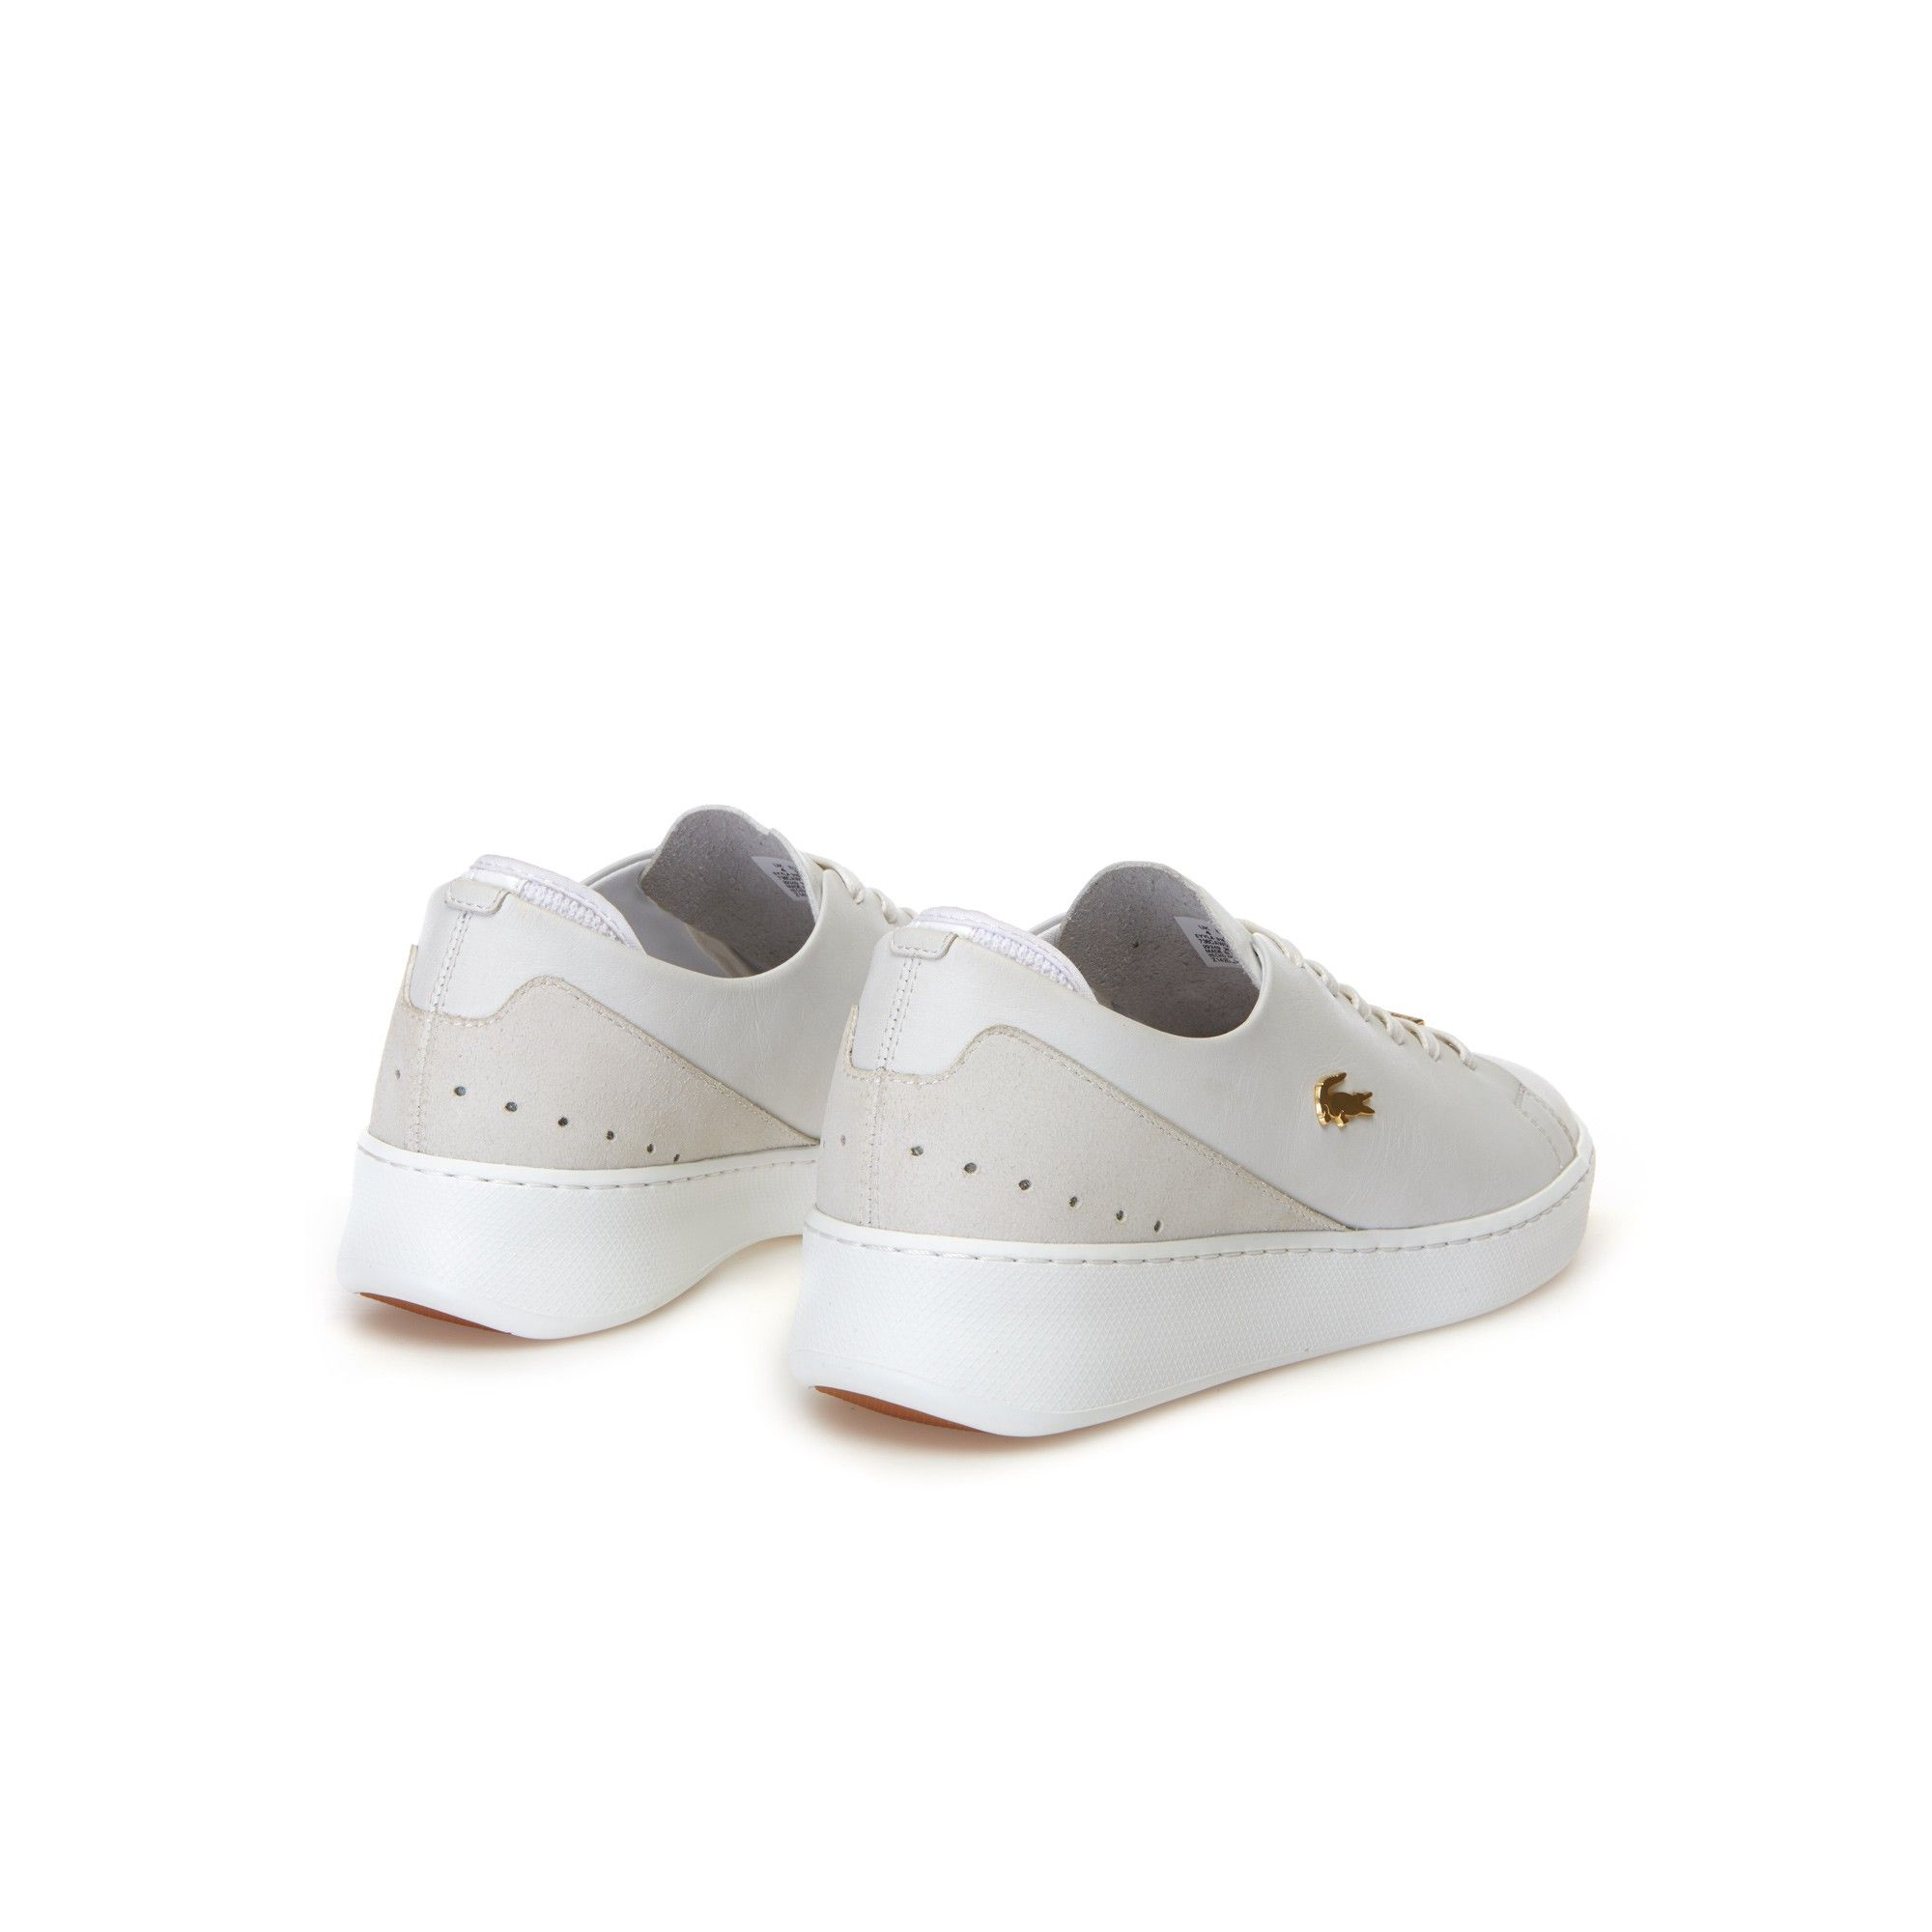 b7520456c73c Lacoste Women S Eyyla Leather And Suede Trainers - Natural Light Pink 10.5